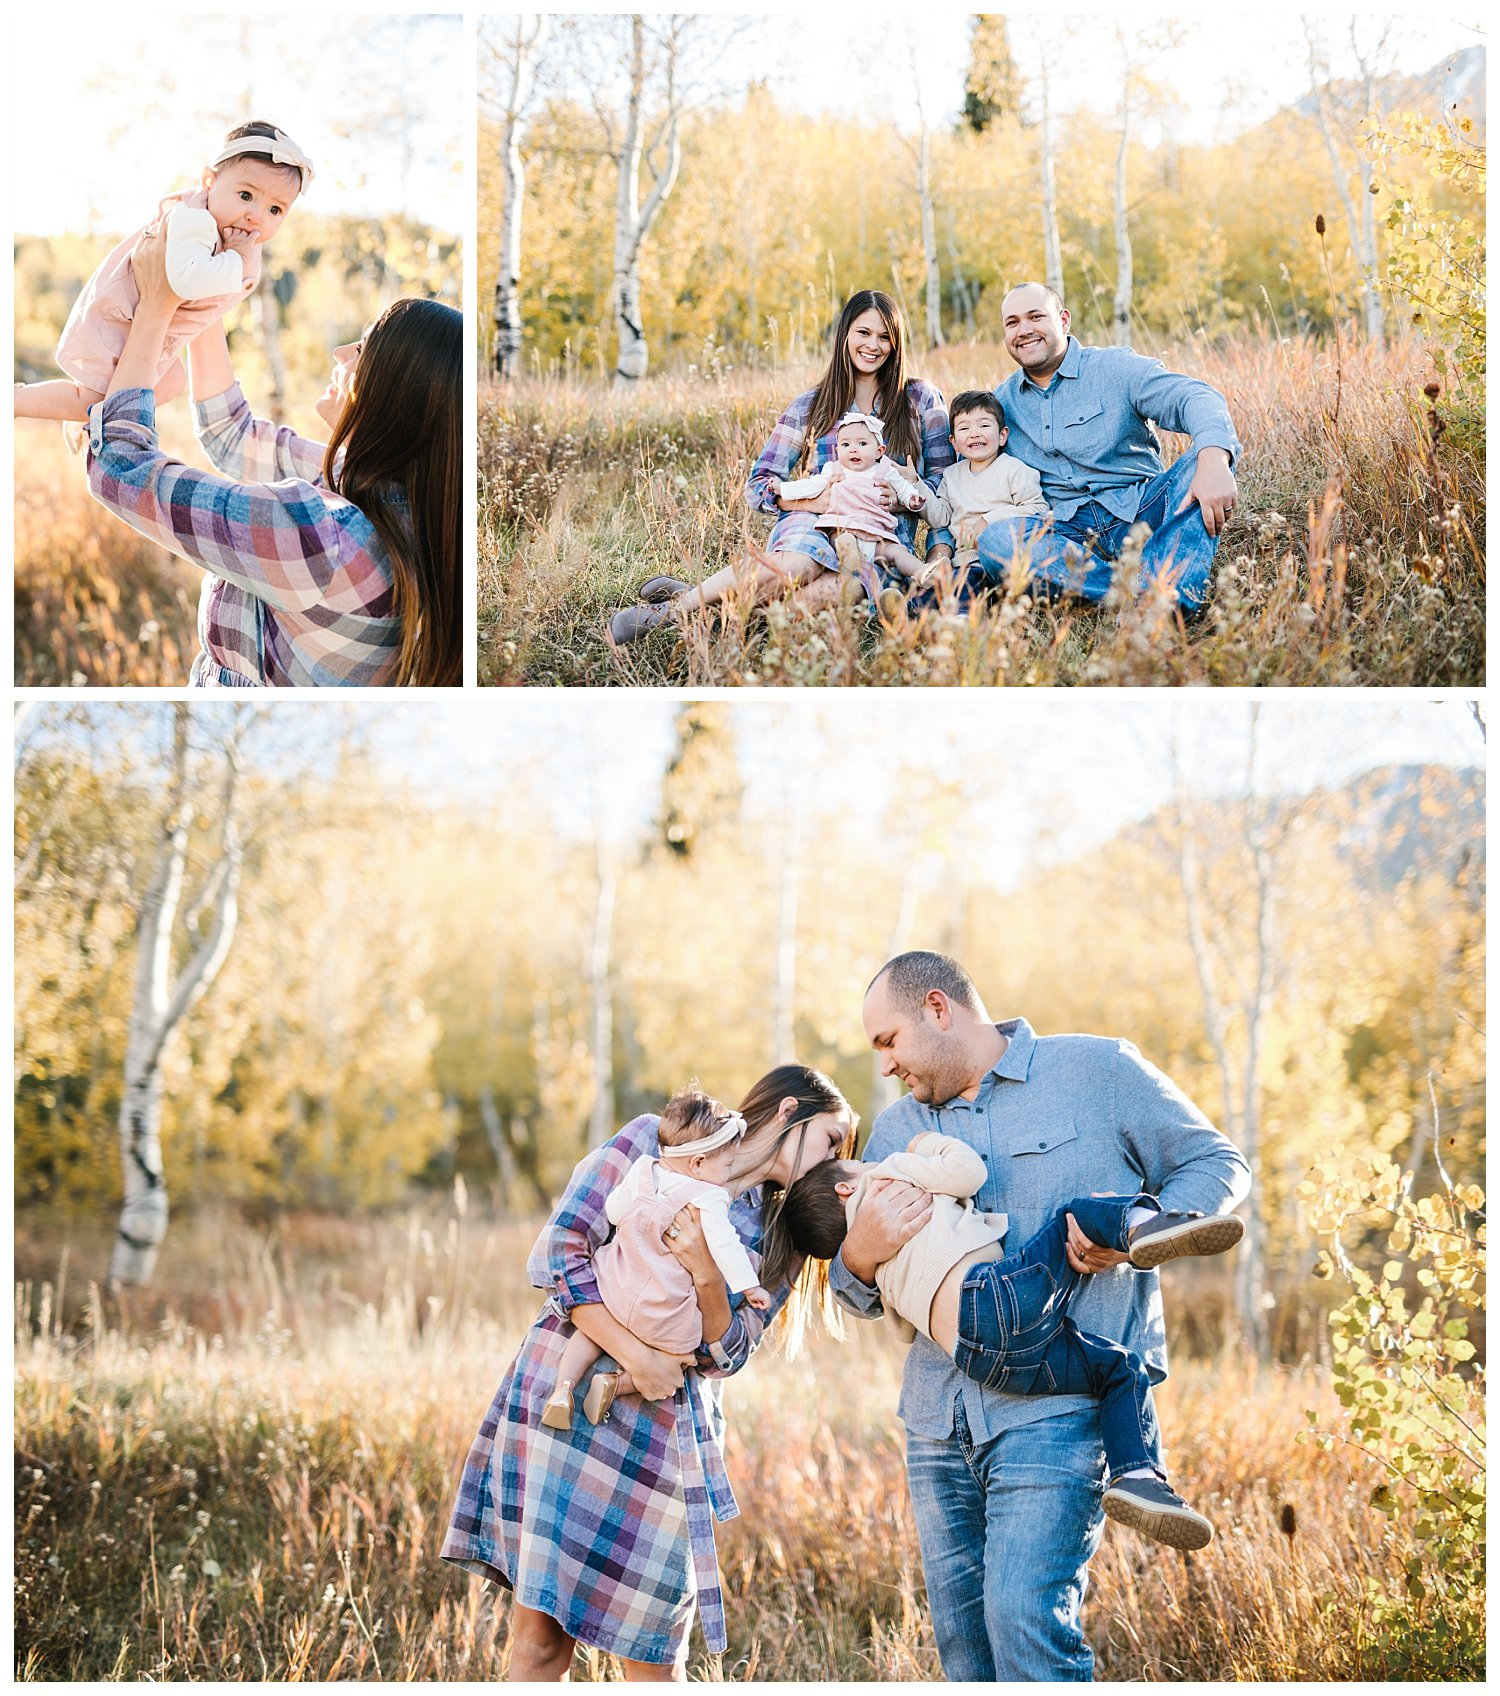 Utah Fall Mini Sessions - Antelope Island and Big Cottonwood Canyon